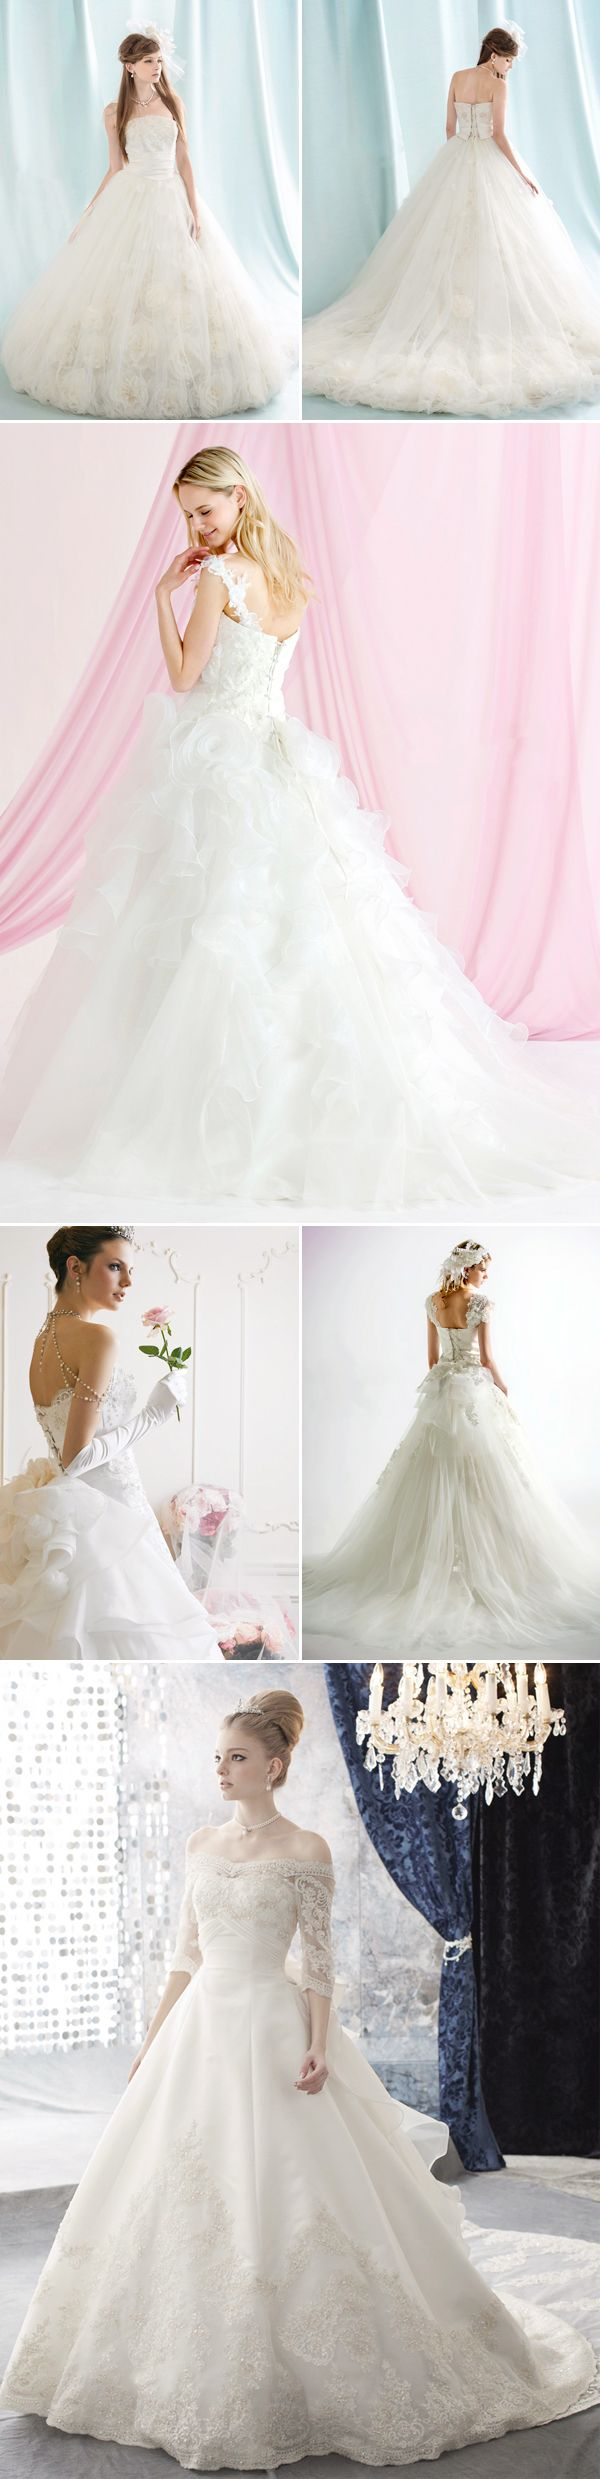 39 Classic Princess Wedding Dresses - Loletta Angelique